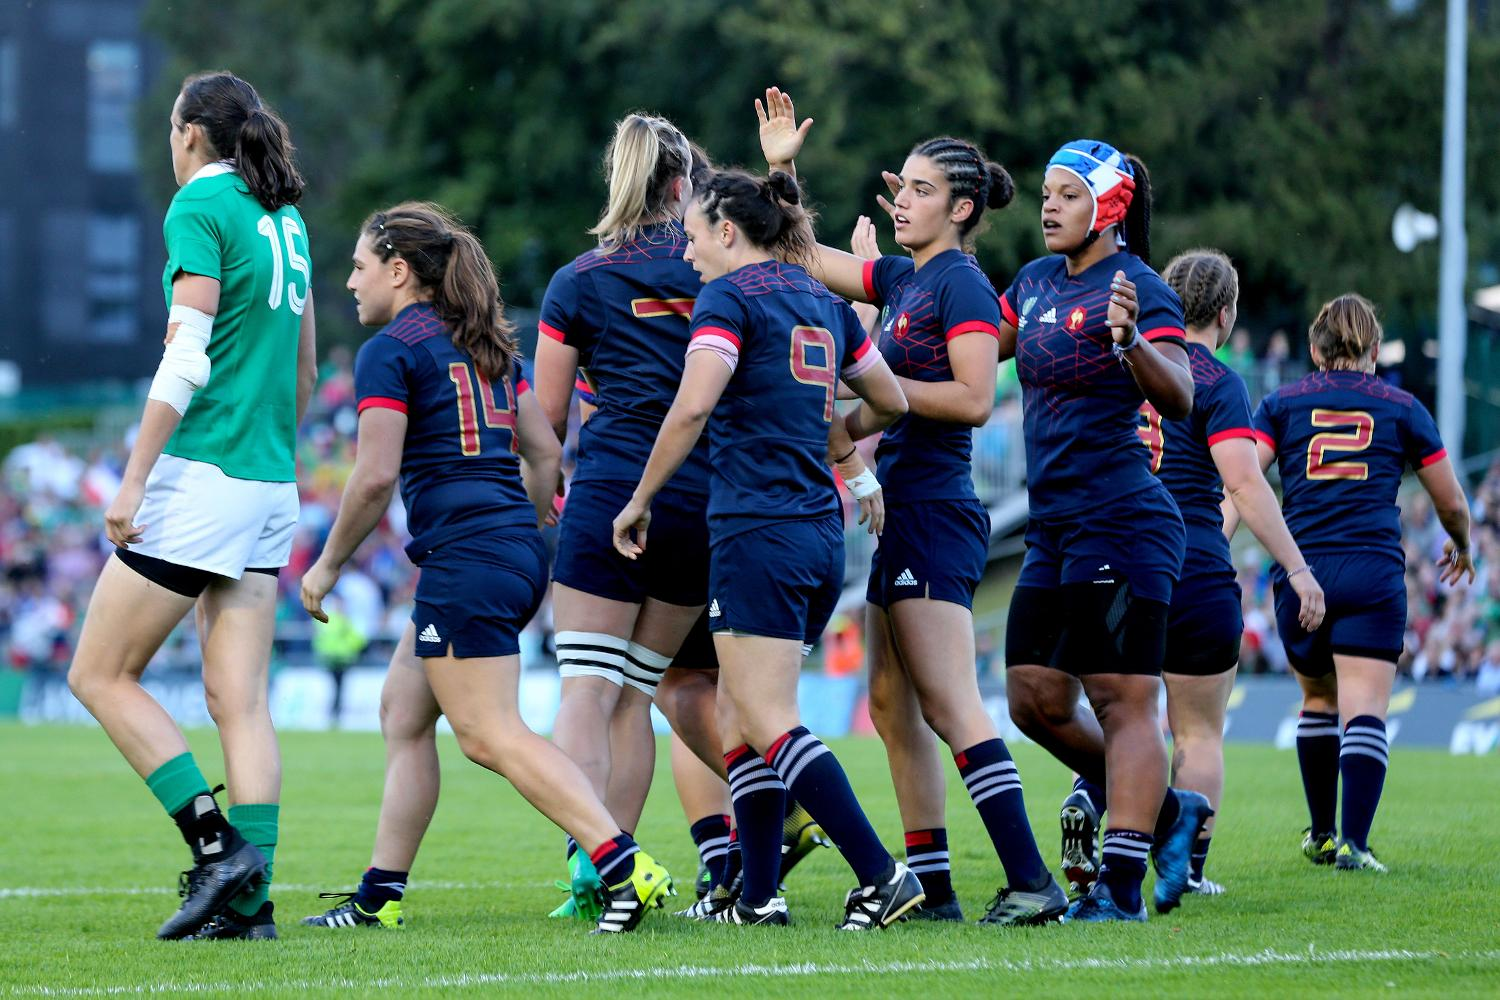 Romane Menager celebrates scoring a try with teammates 17/8/2017